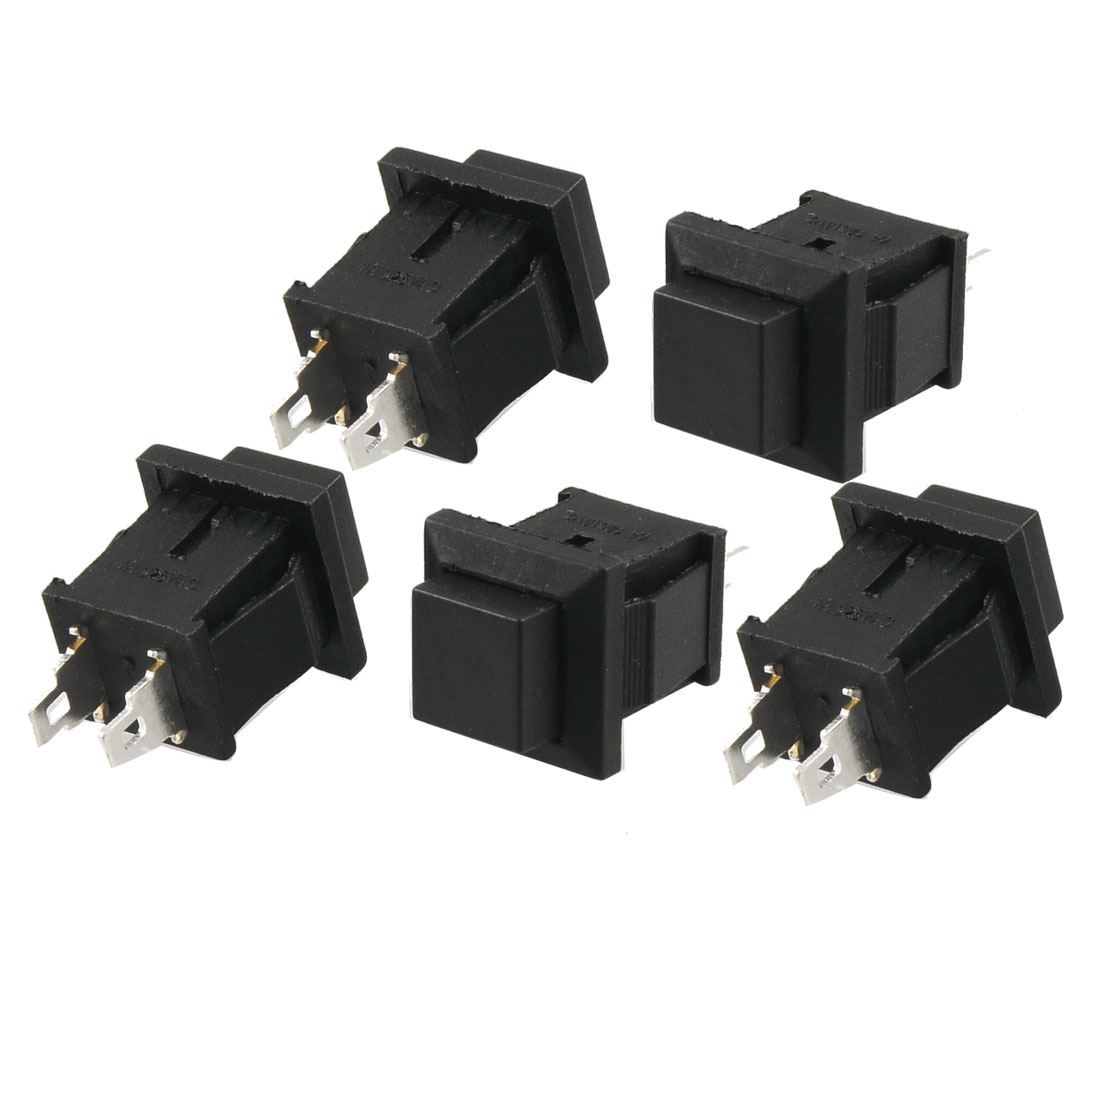 5 Pcs AC 125V 1A SPST Momentary Black Push Button Switch